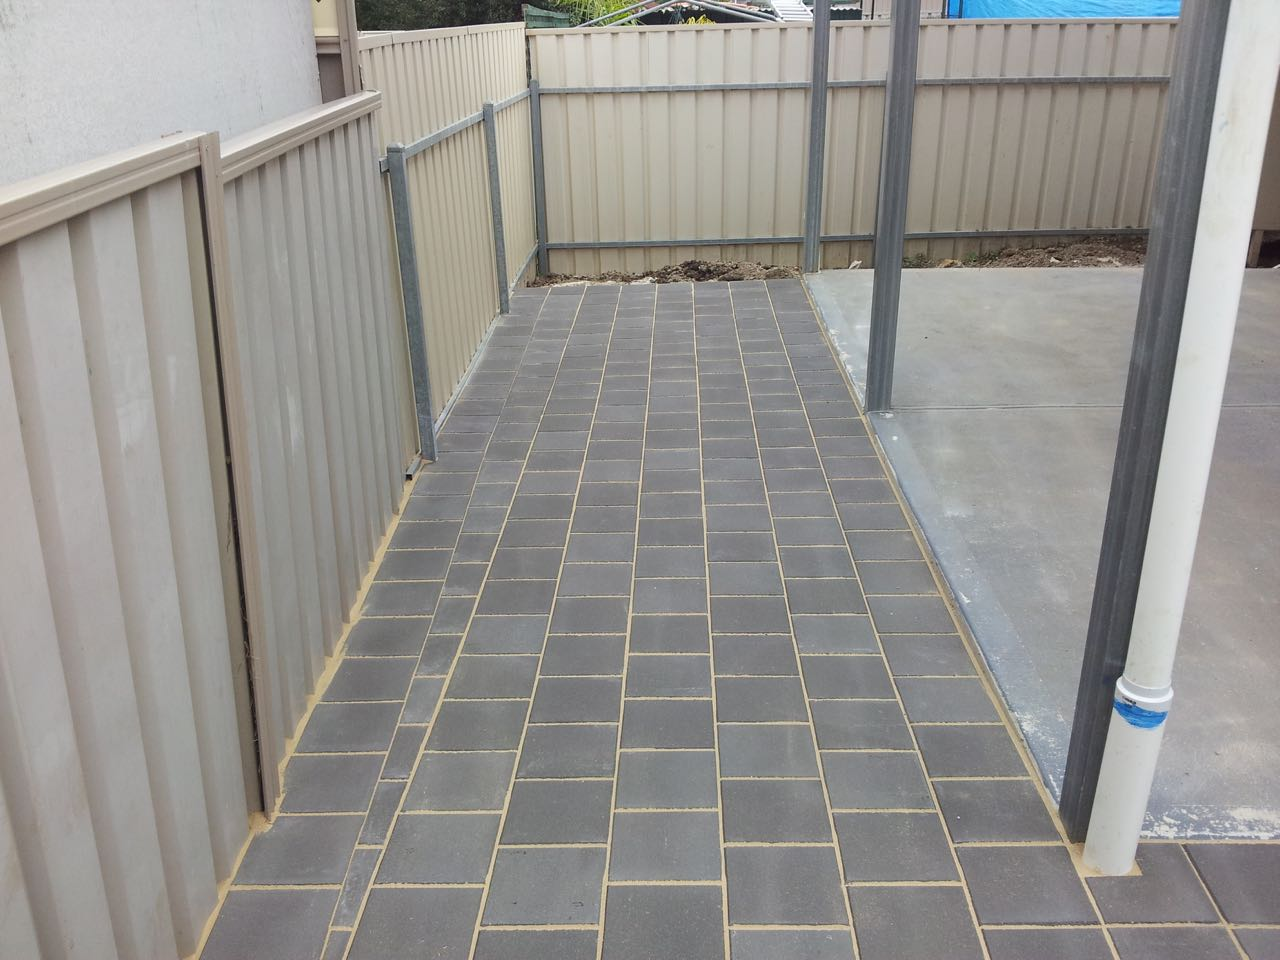 North Gate - Concrete Paved Backyard For Alfresco Set Up